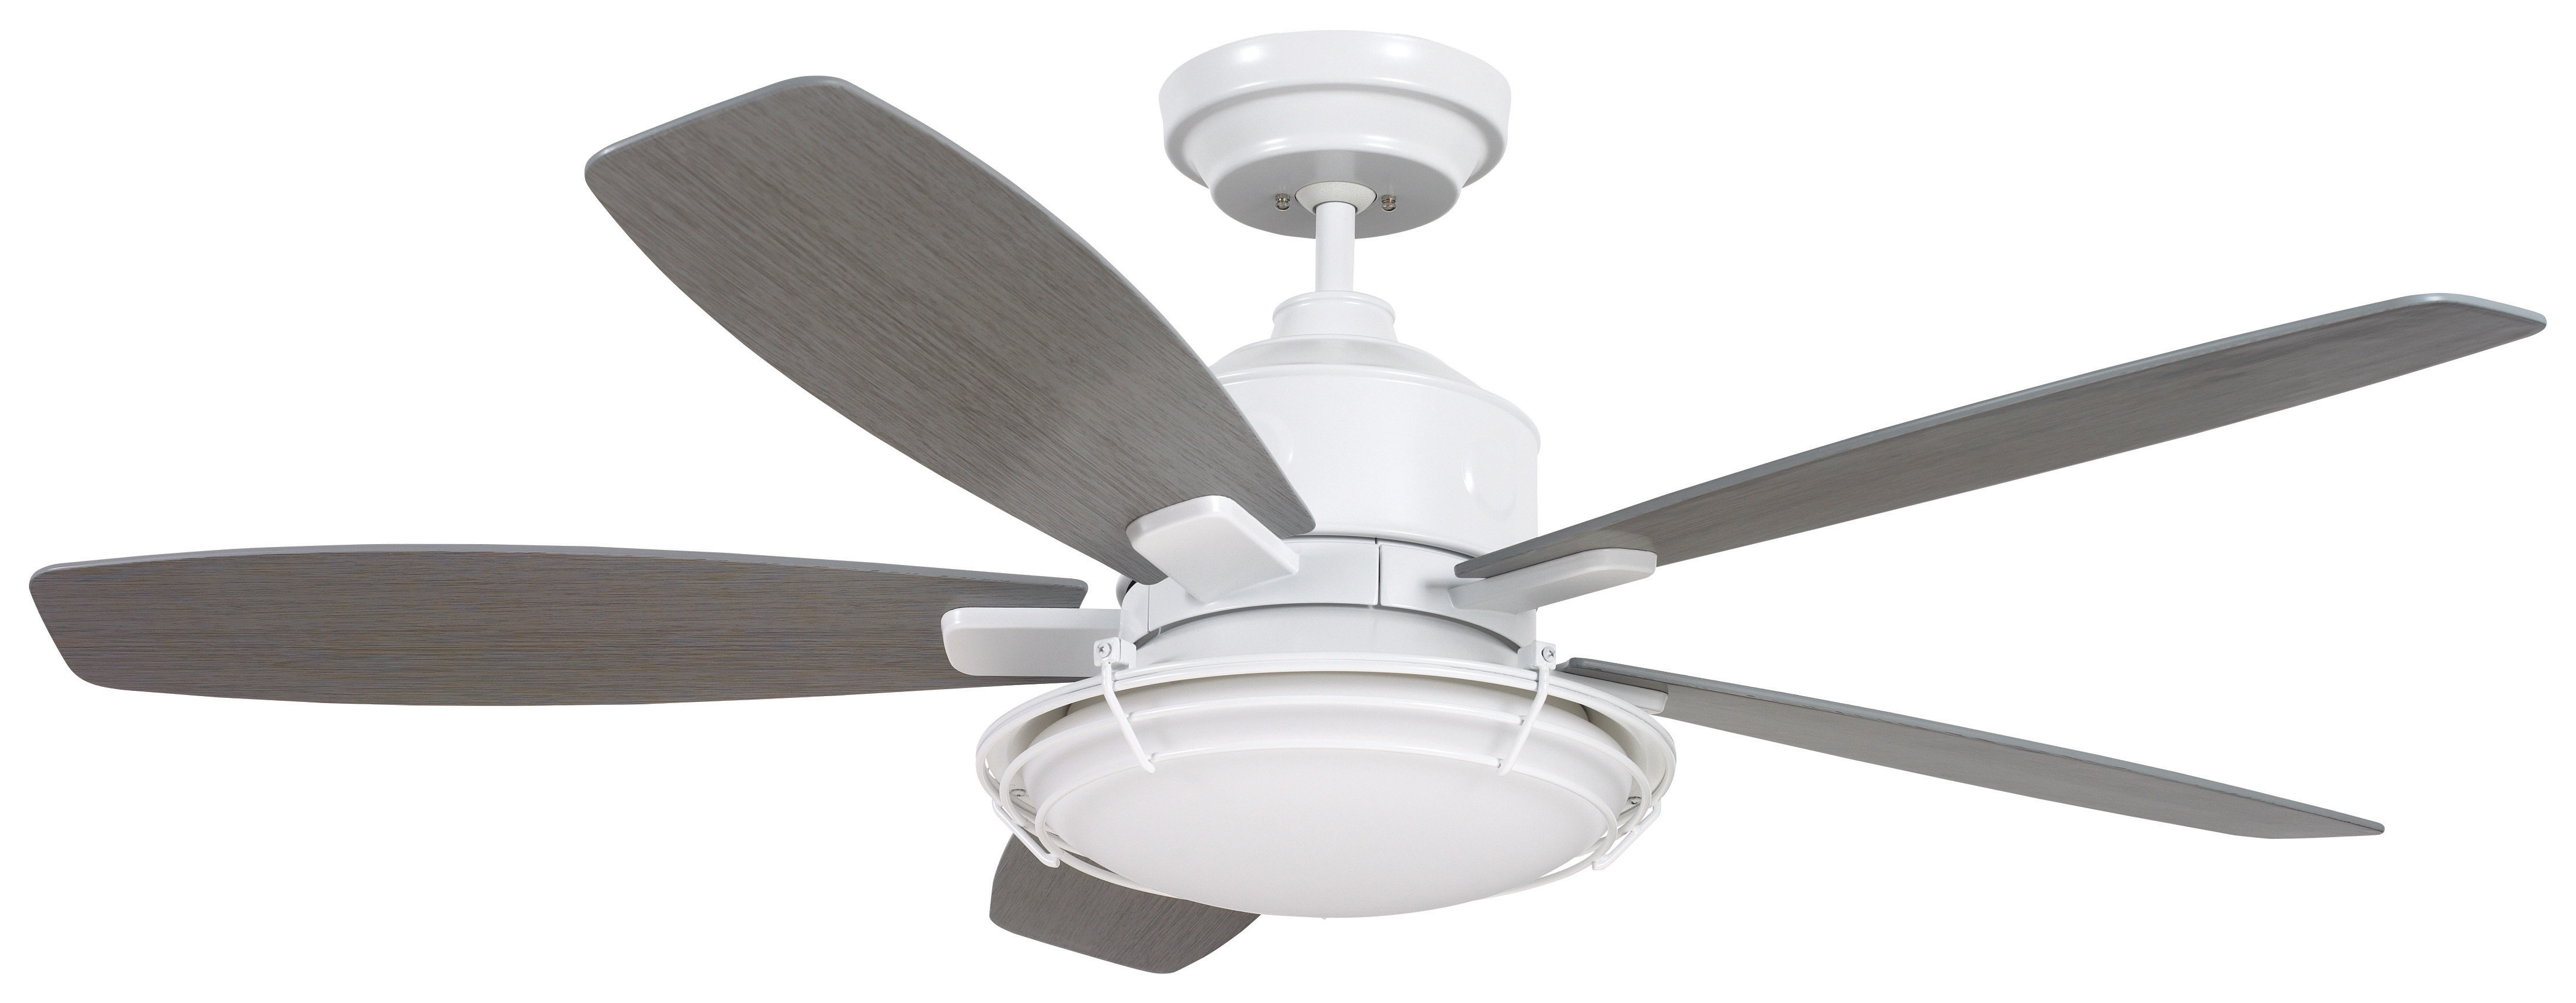 "2019 Acero Retro 3 Blade Led Ceiling Fans Throughout 54"" Jeanine 5 Blade Outdoor Ceiling Fan (View 12 of 20)"